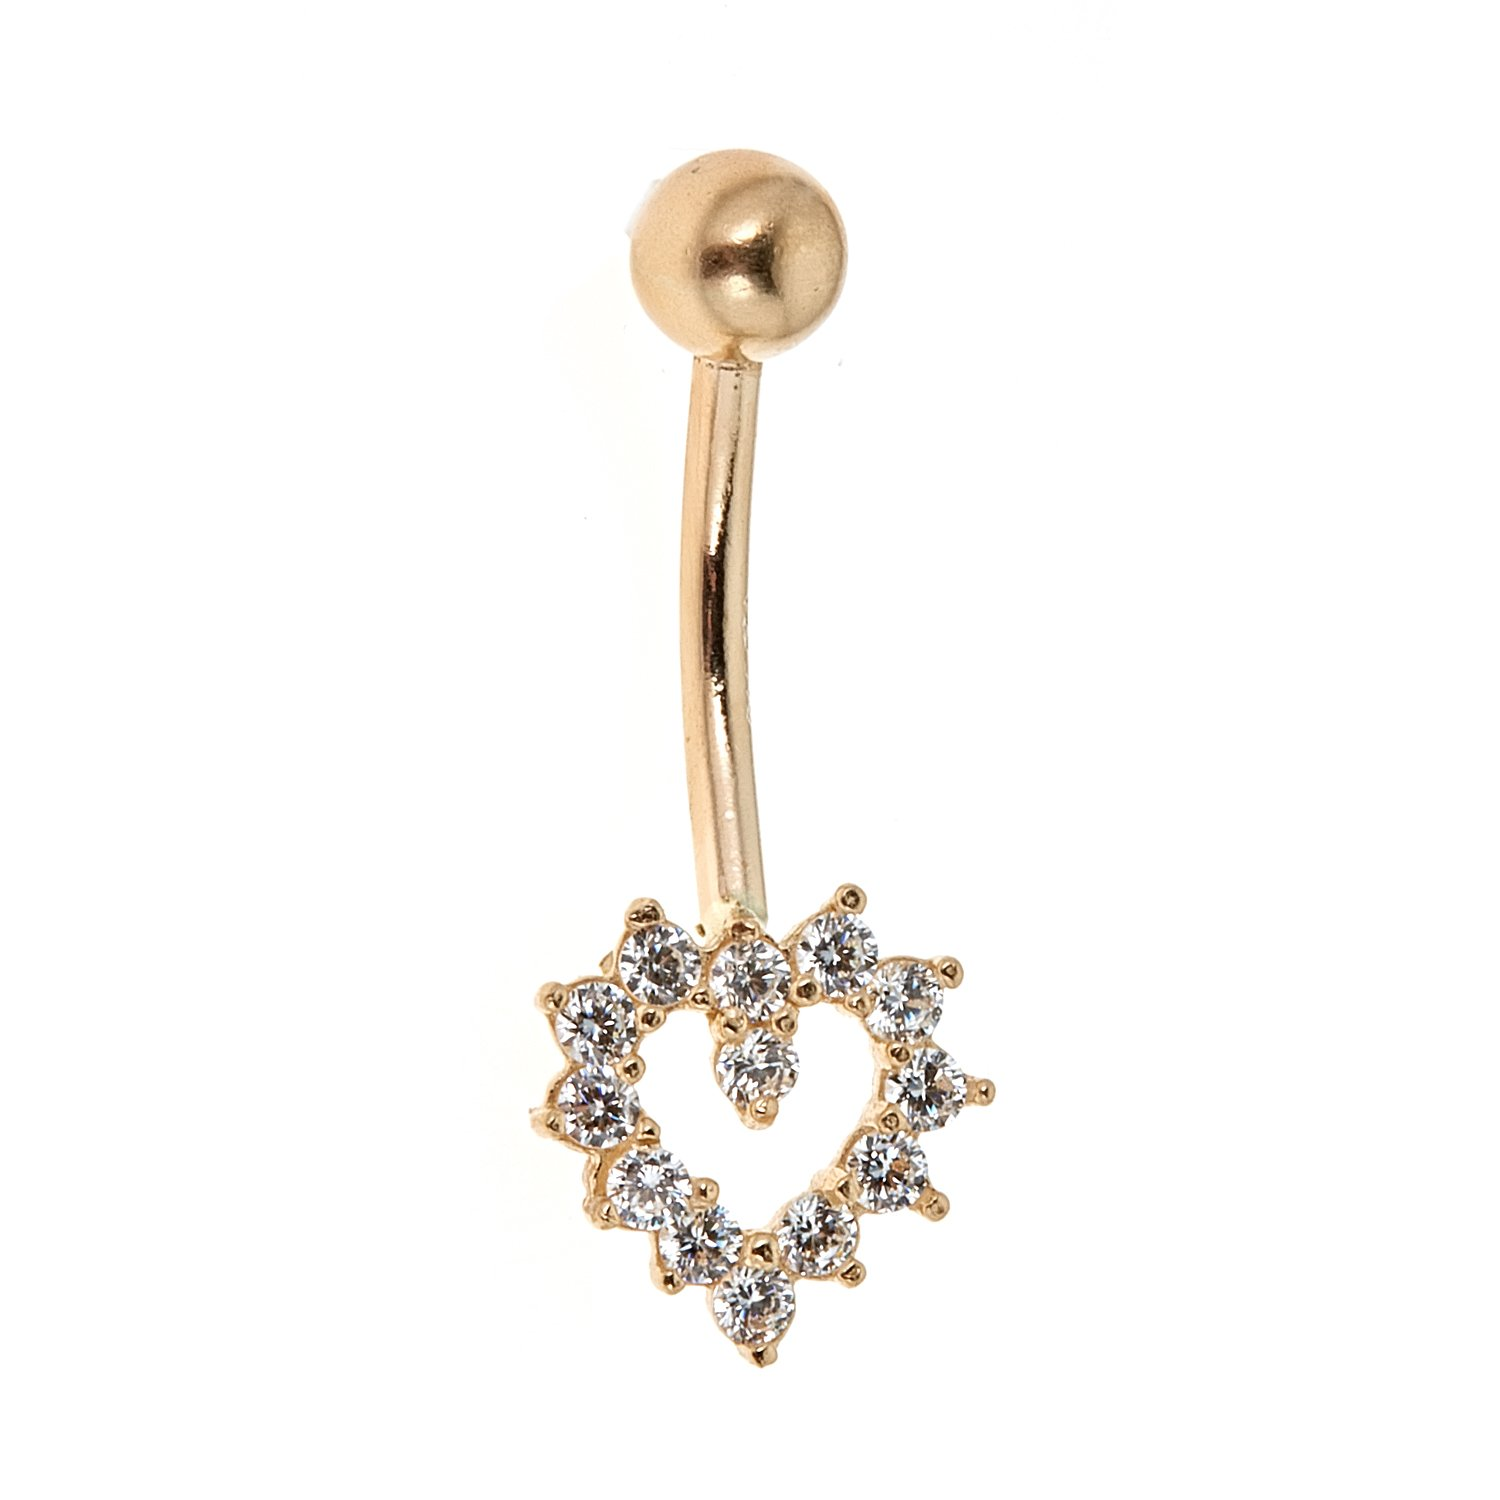 Ritastephens 14k Real Yellow Gold Cubic Zirconia Open Heart Belly Button Navel Ring Body Art by Ritastephens